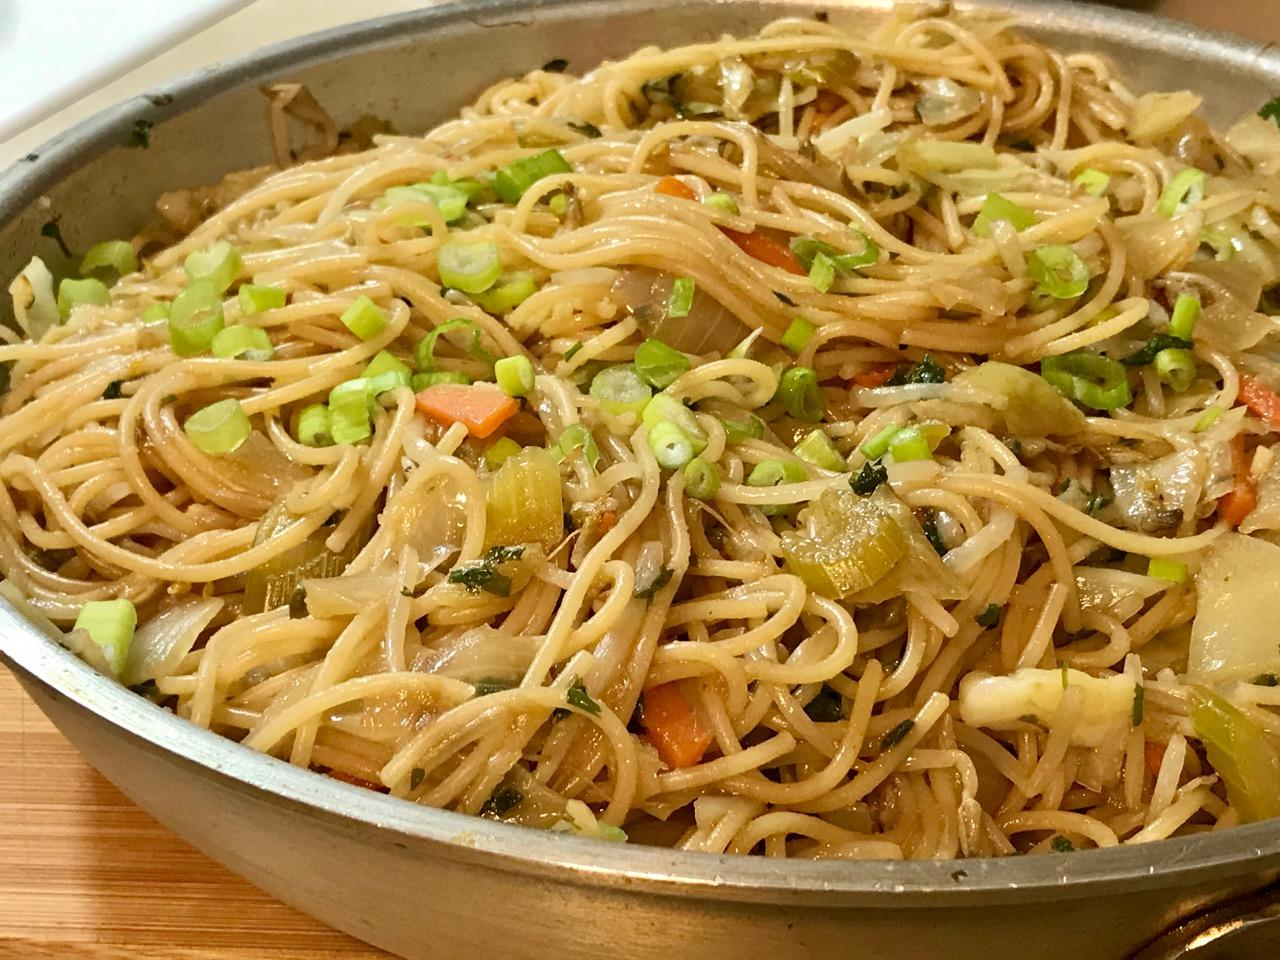 Stir-Fried Sprout And Spaghetti